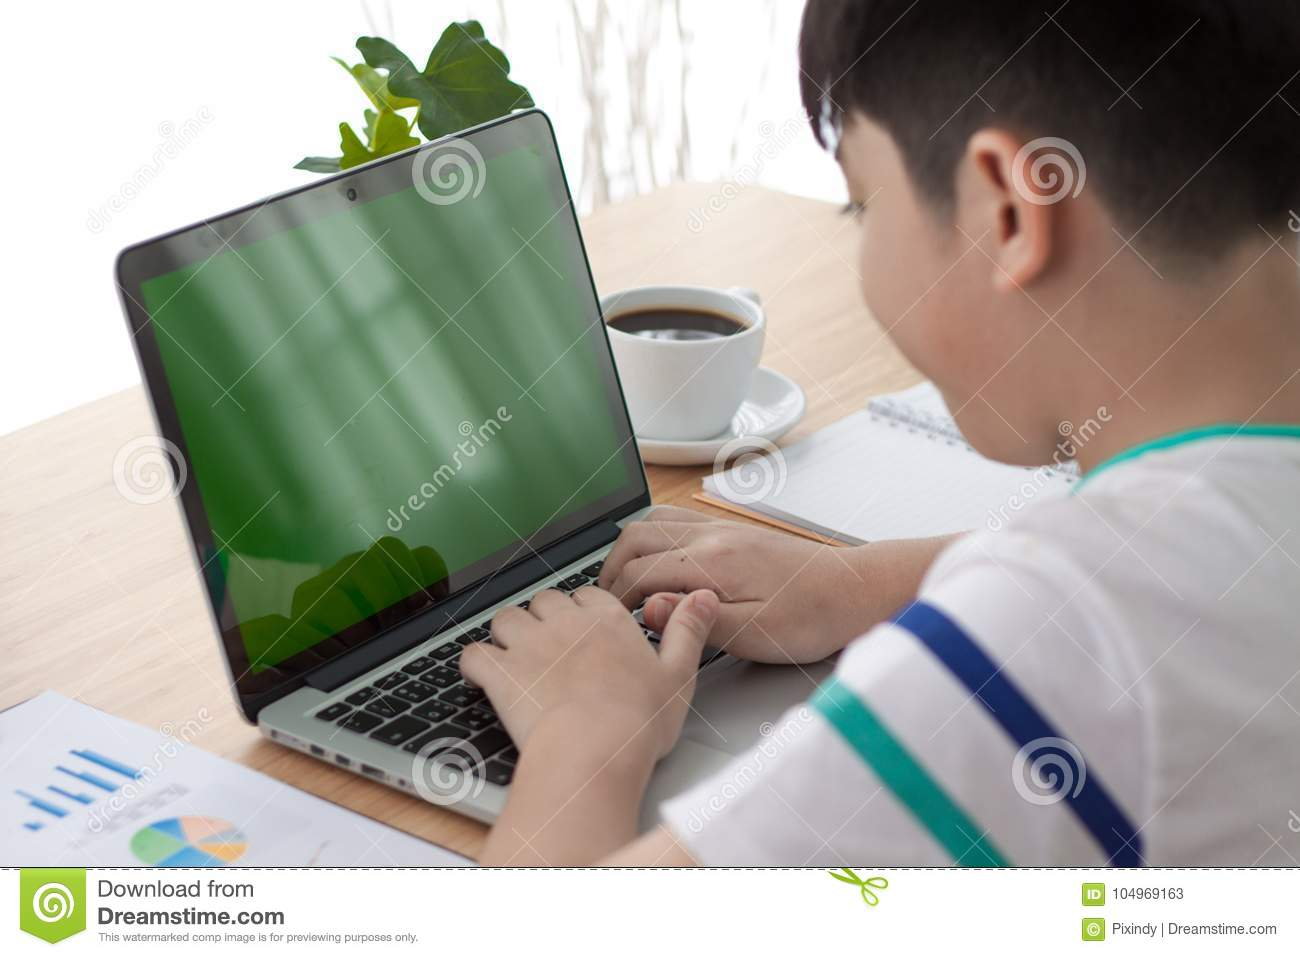 Over The Shoulder Shot Of An Asain Boy Typing On A